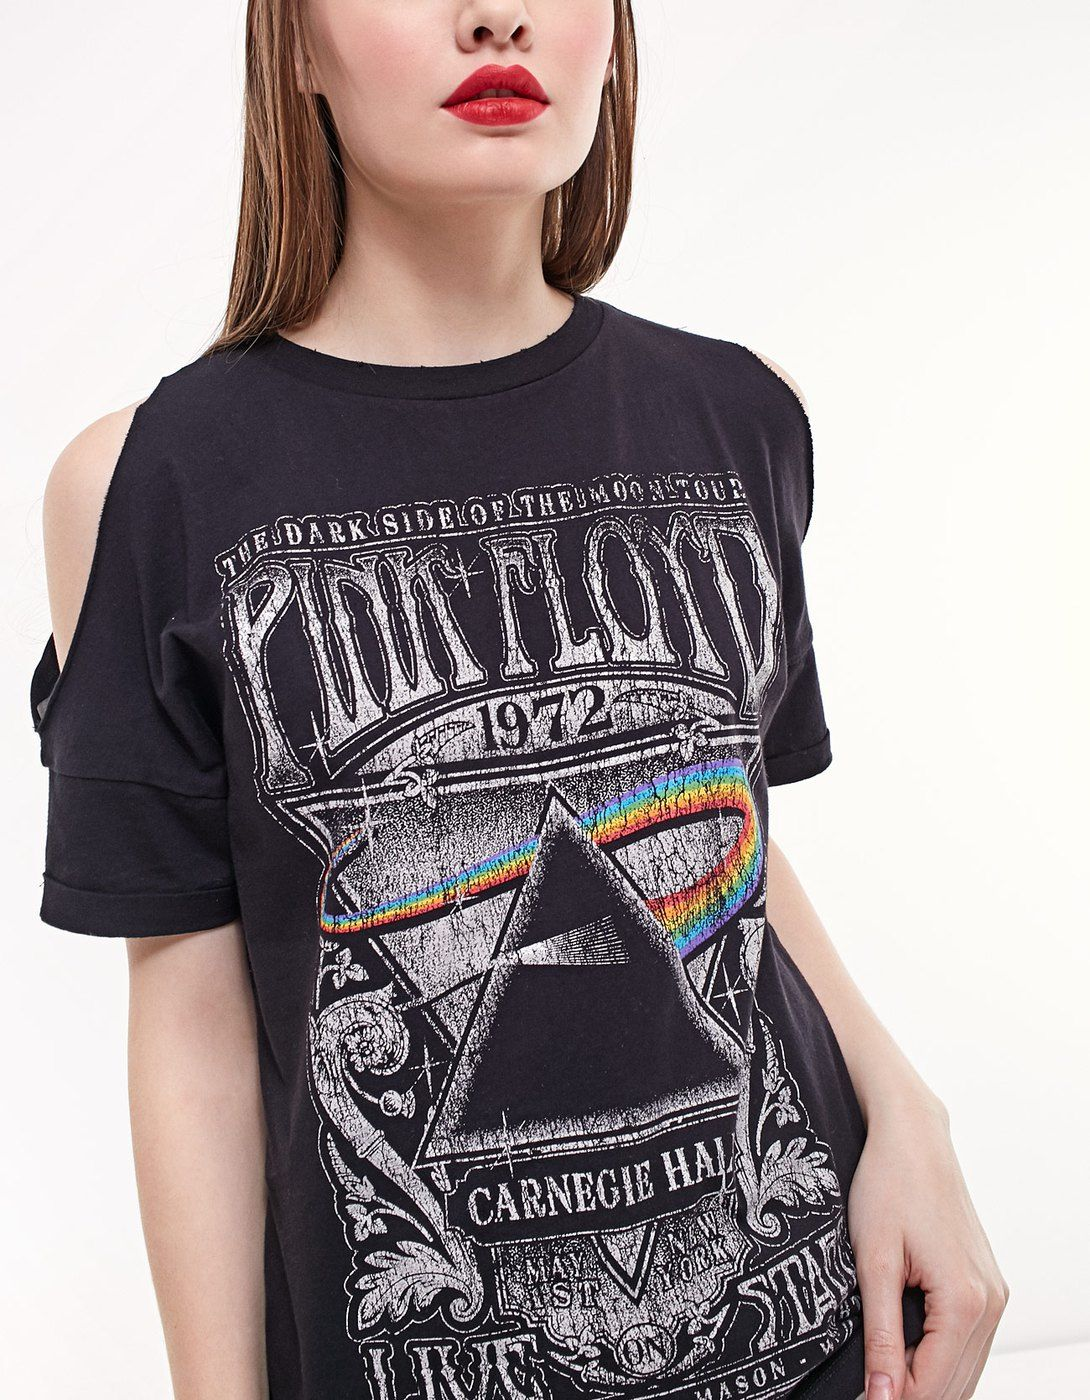 F The Shoulder Pink Floyd Top T Shirts